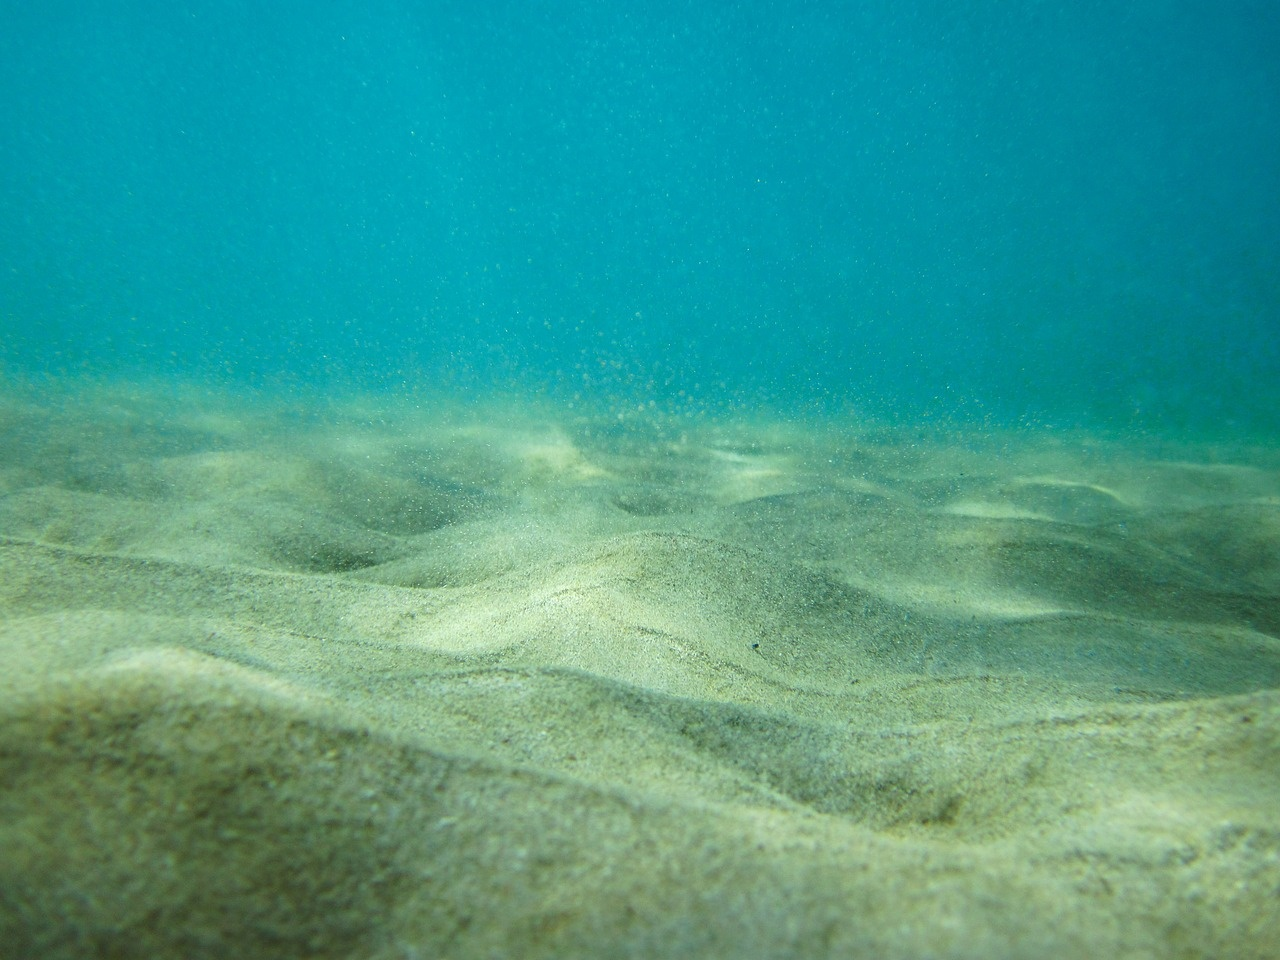 Bedforms under water